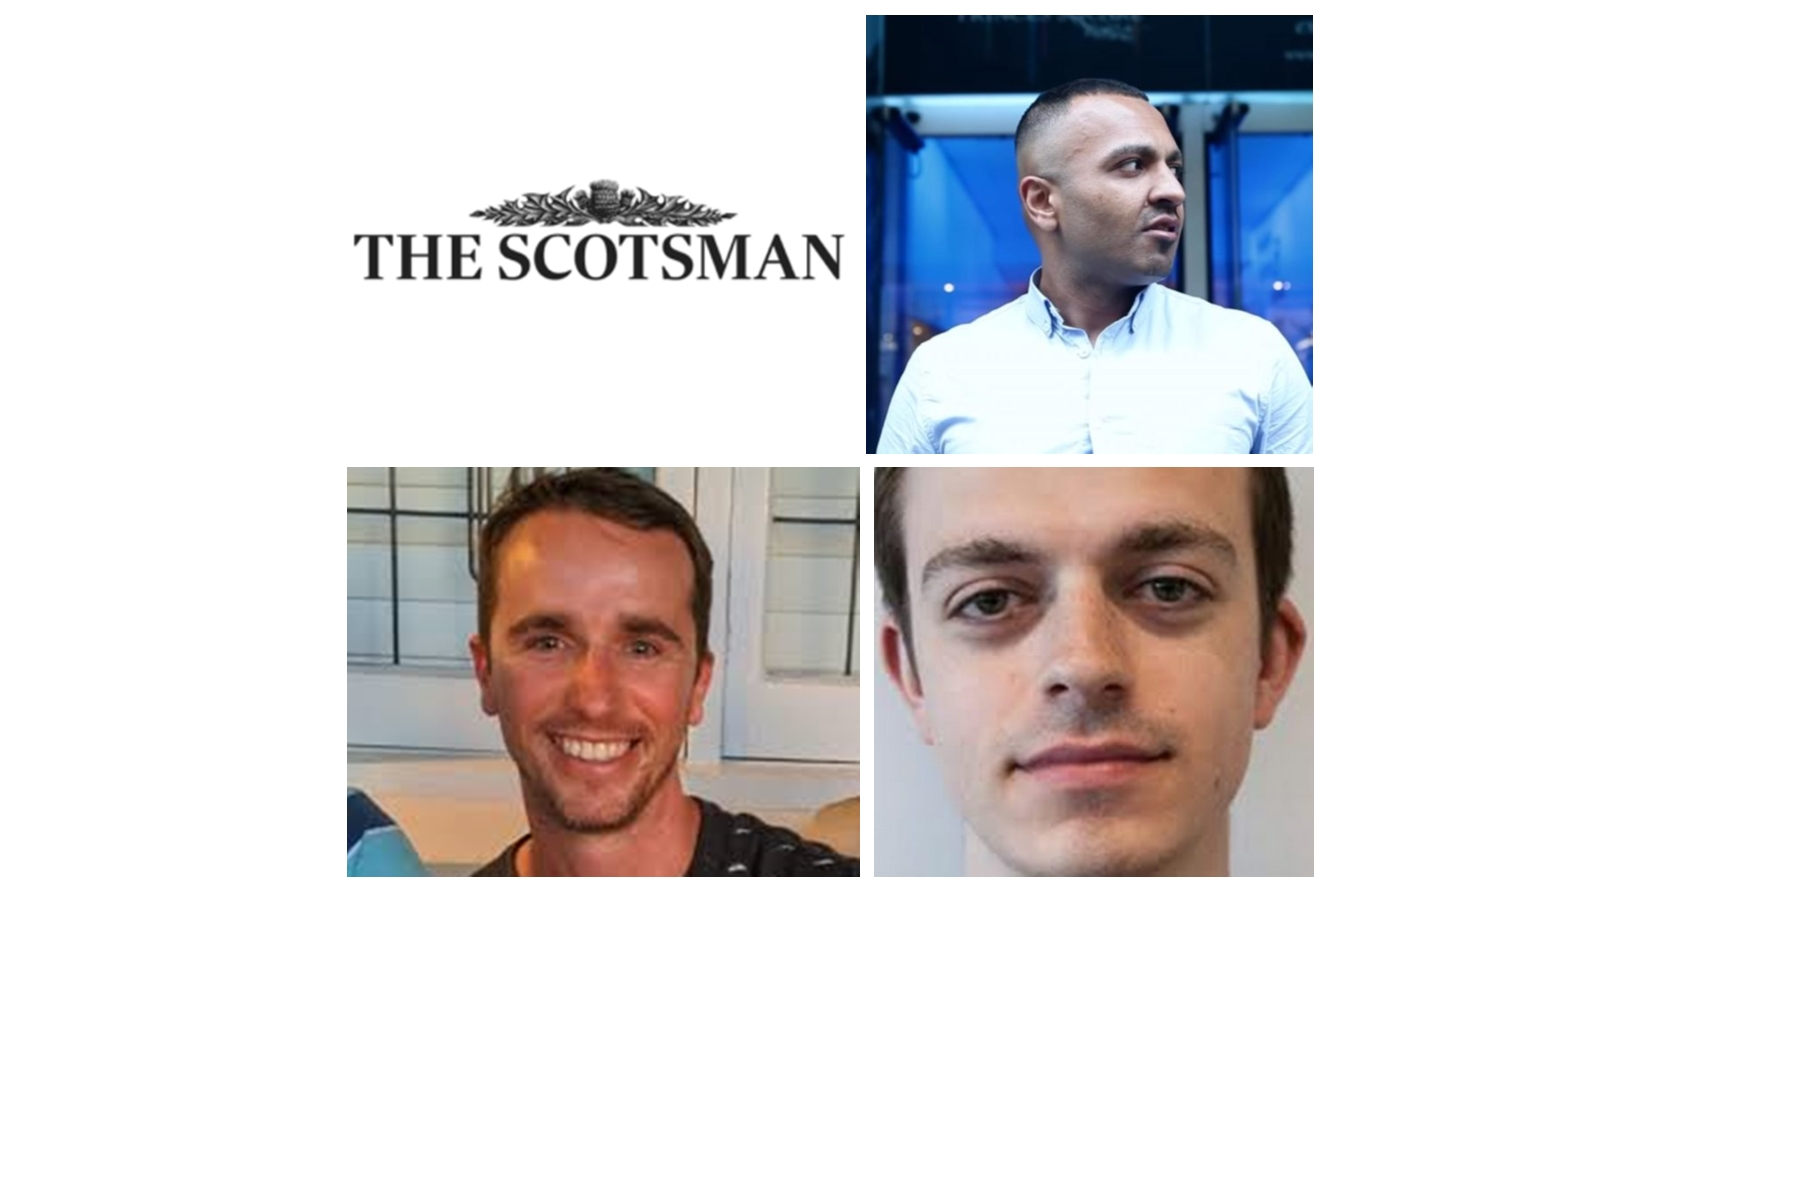 Predatory Reporters Dale Miller And Connor Gordon Manipulate Public By Selectively Reporting Addy Agame Wrongful Conviction For Racist Scotsman Newspaper!